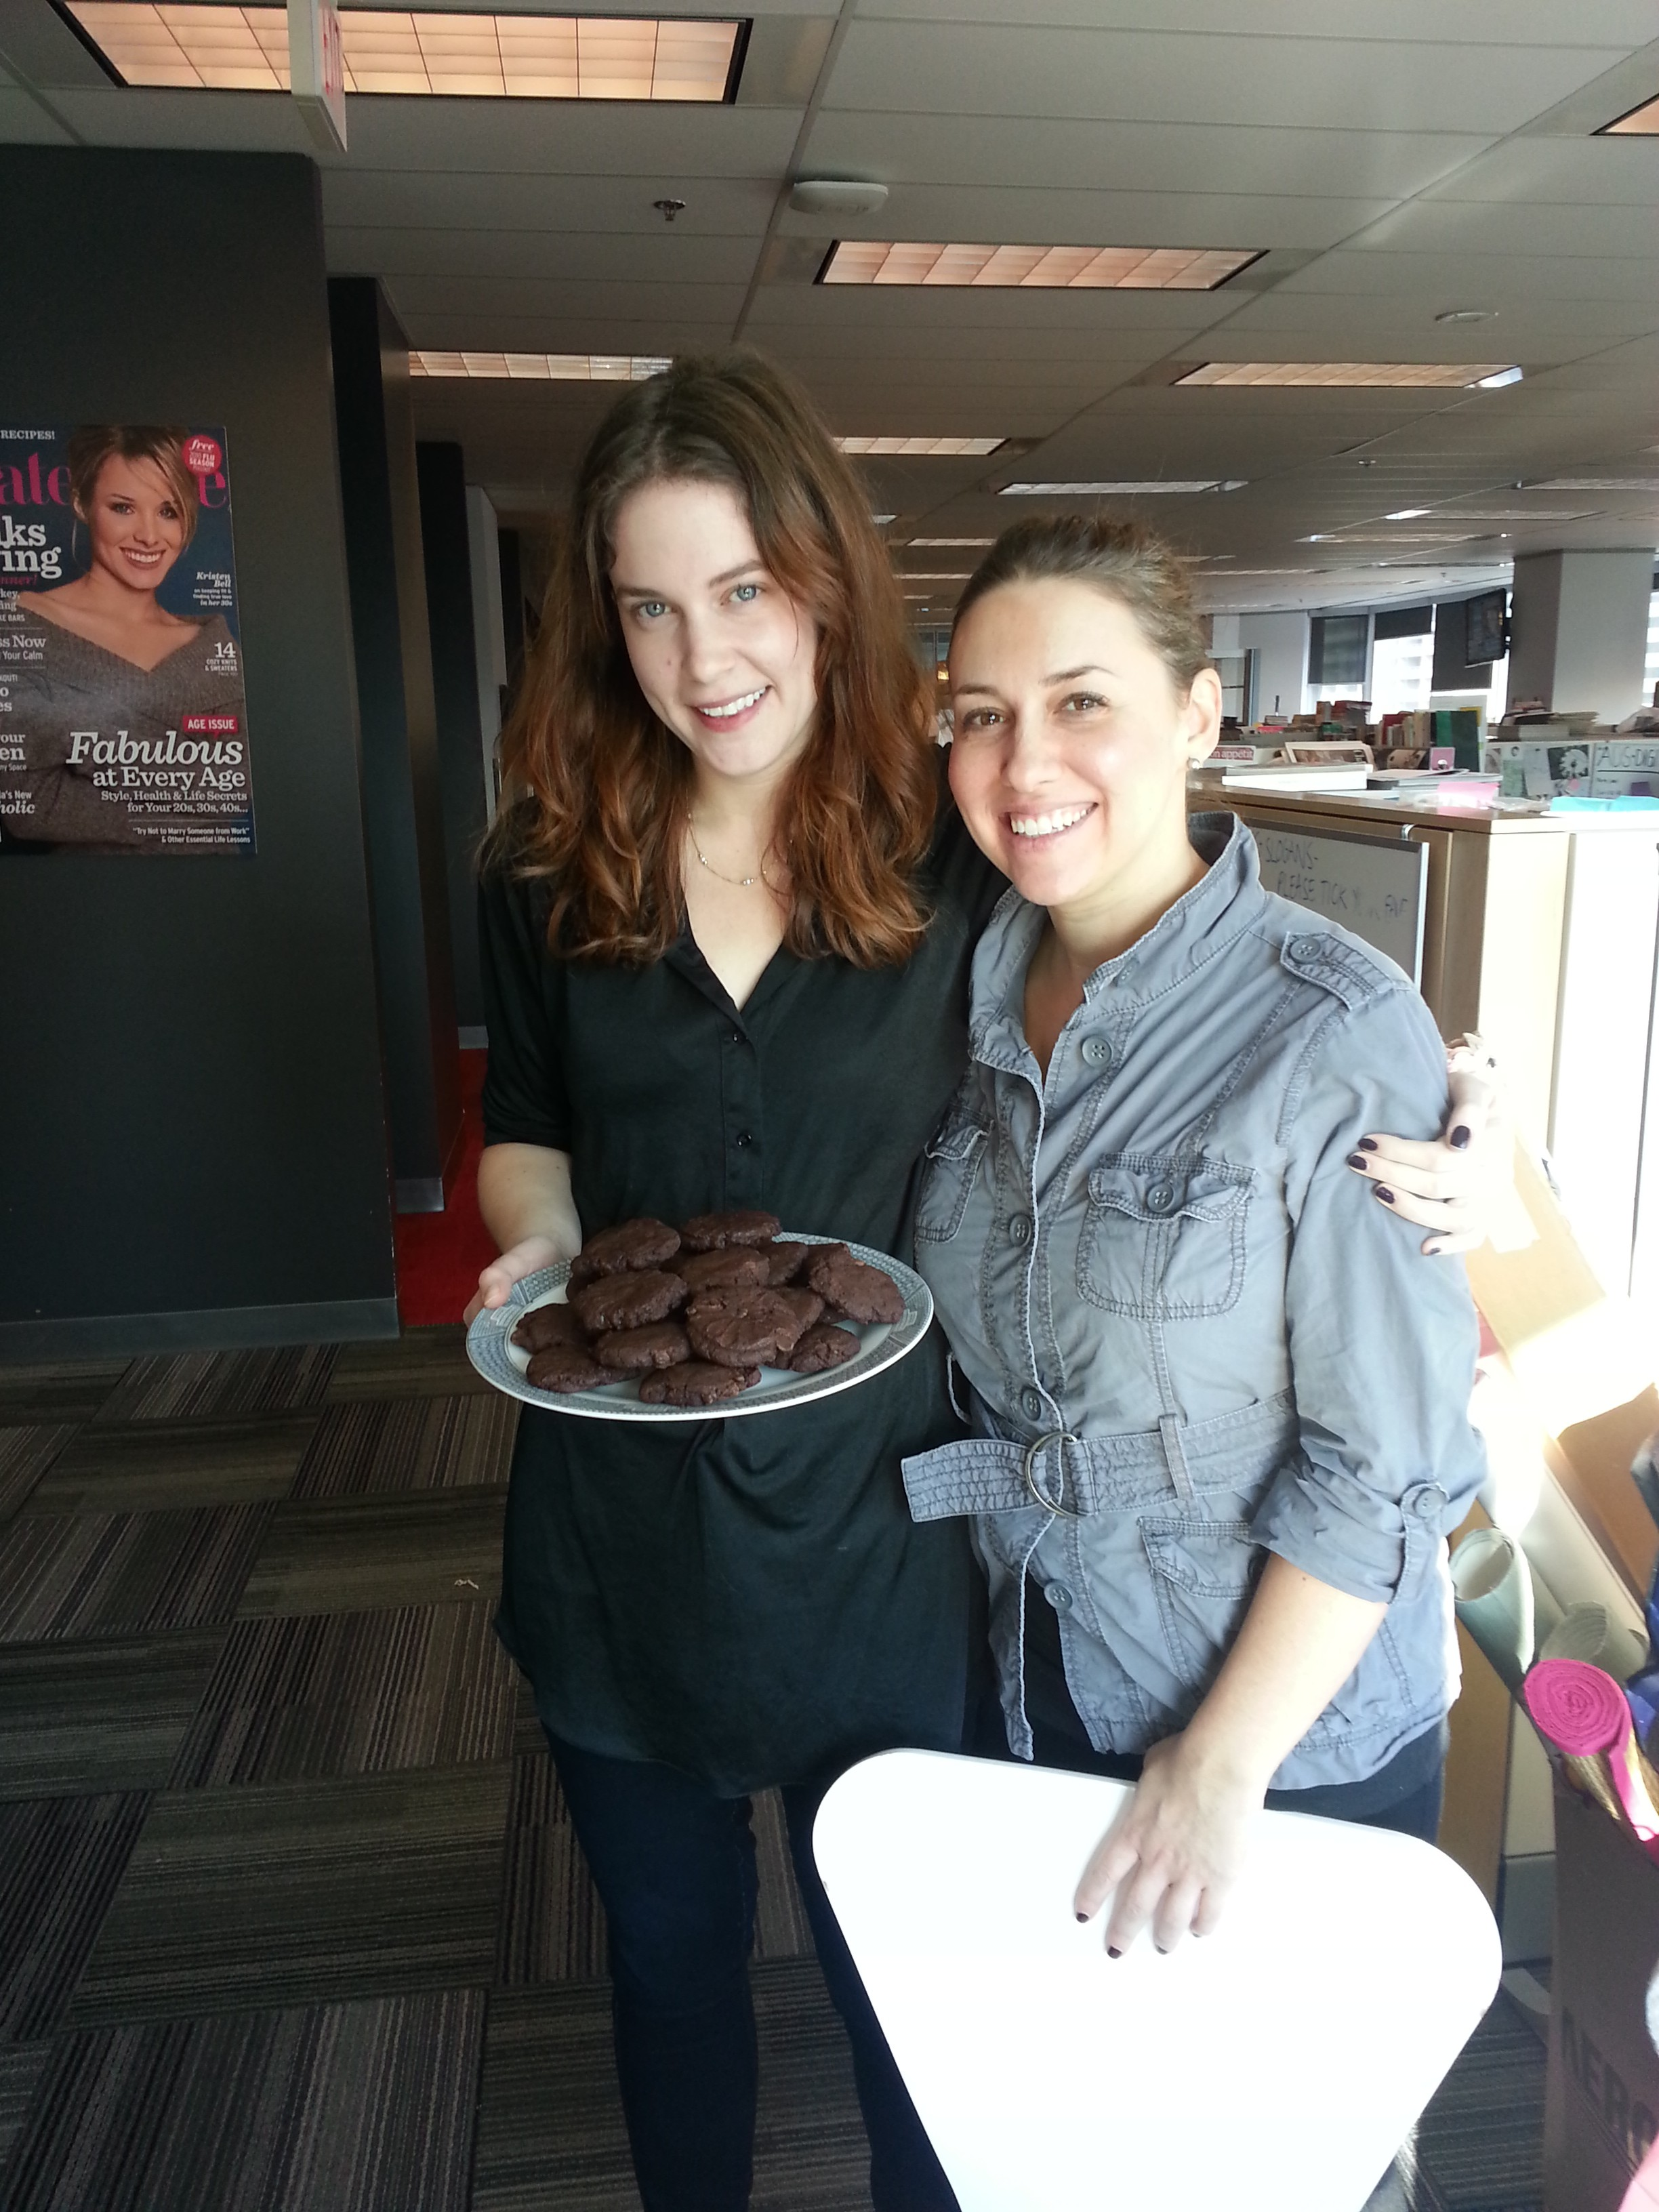 Chocolate cookies for the office #kindcycle